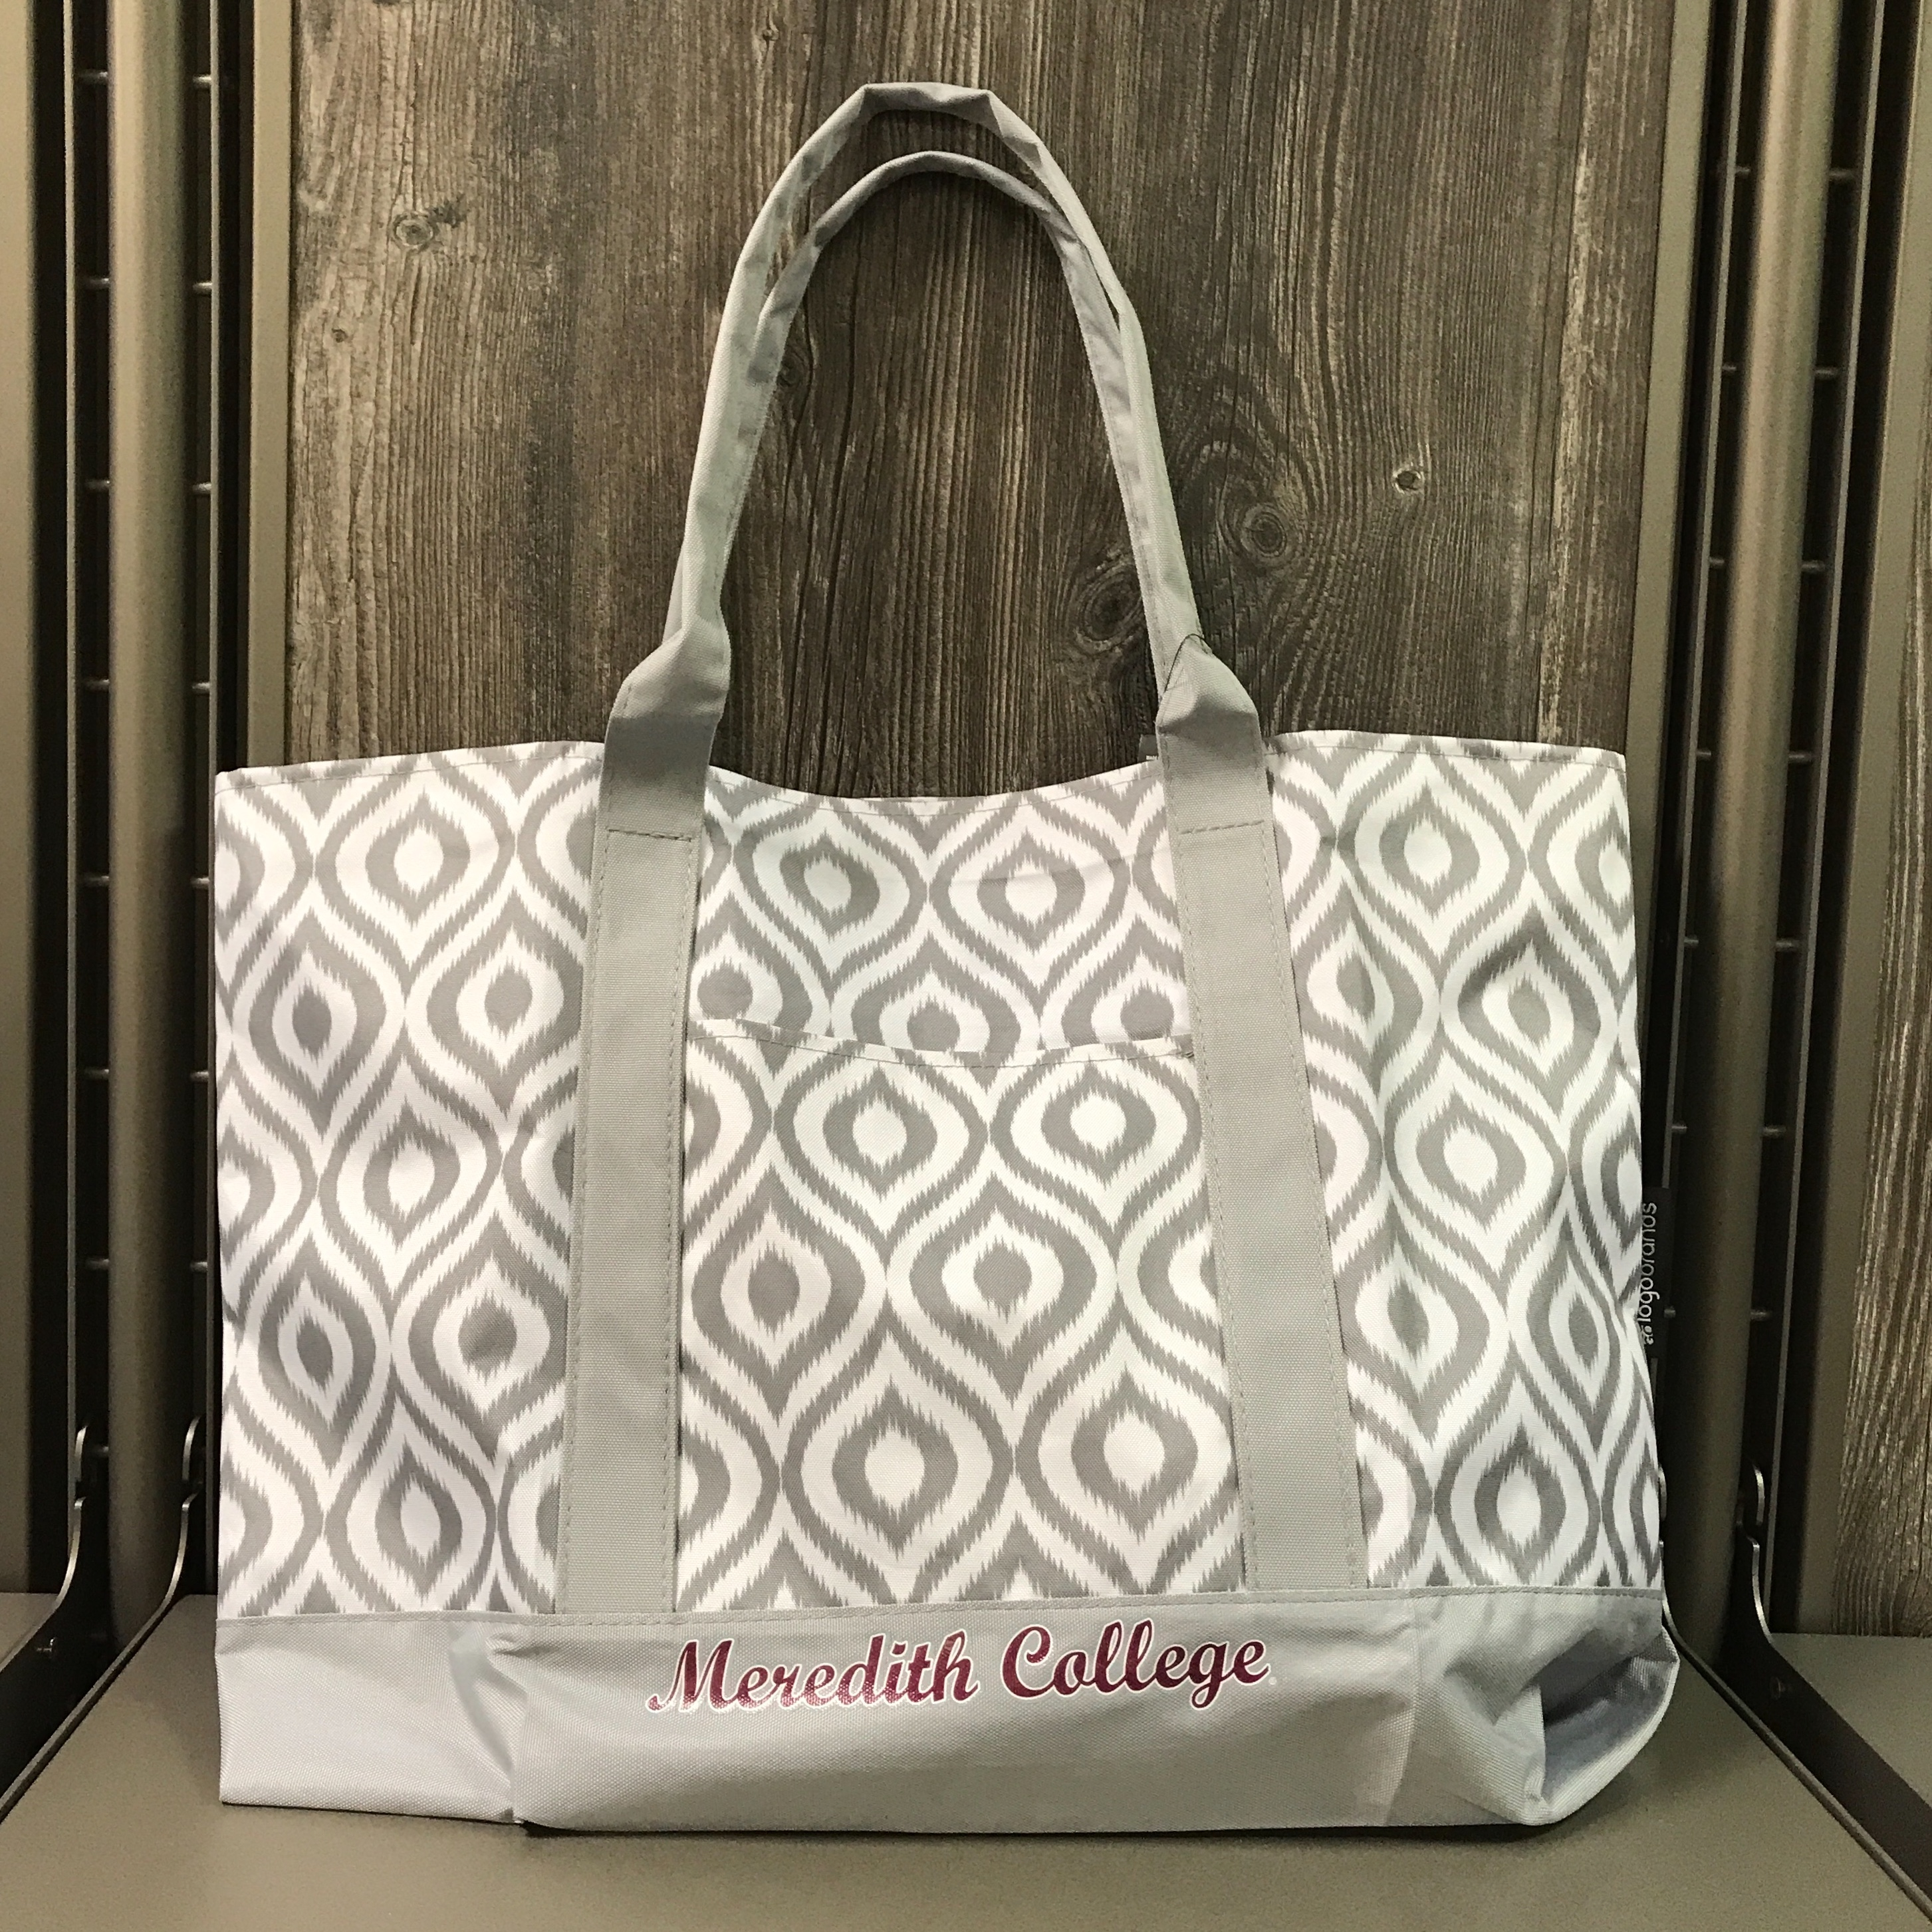 Image for the Ikat Tote Gray Logo Brands product